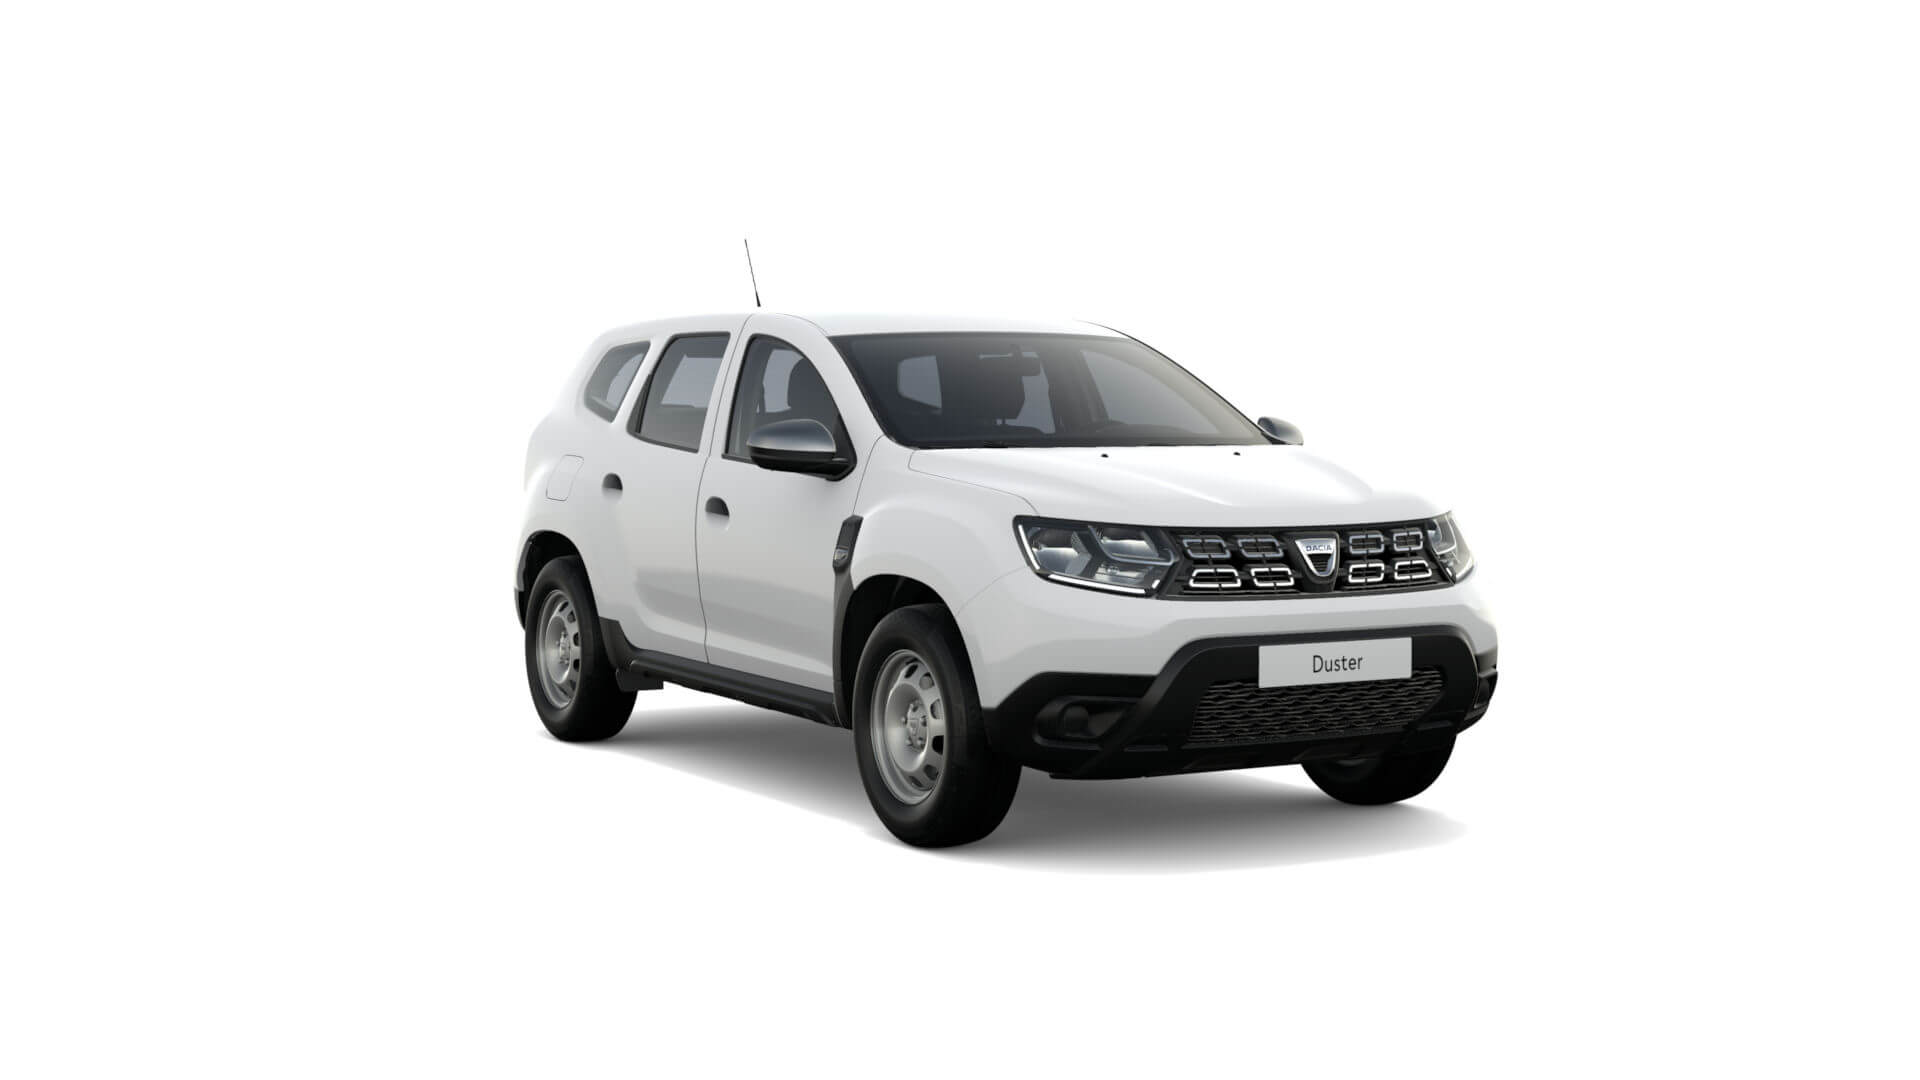 Automodell weiß - Dacia Duster - Renault Ahrens Hannover